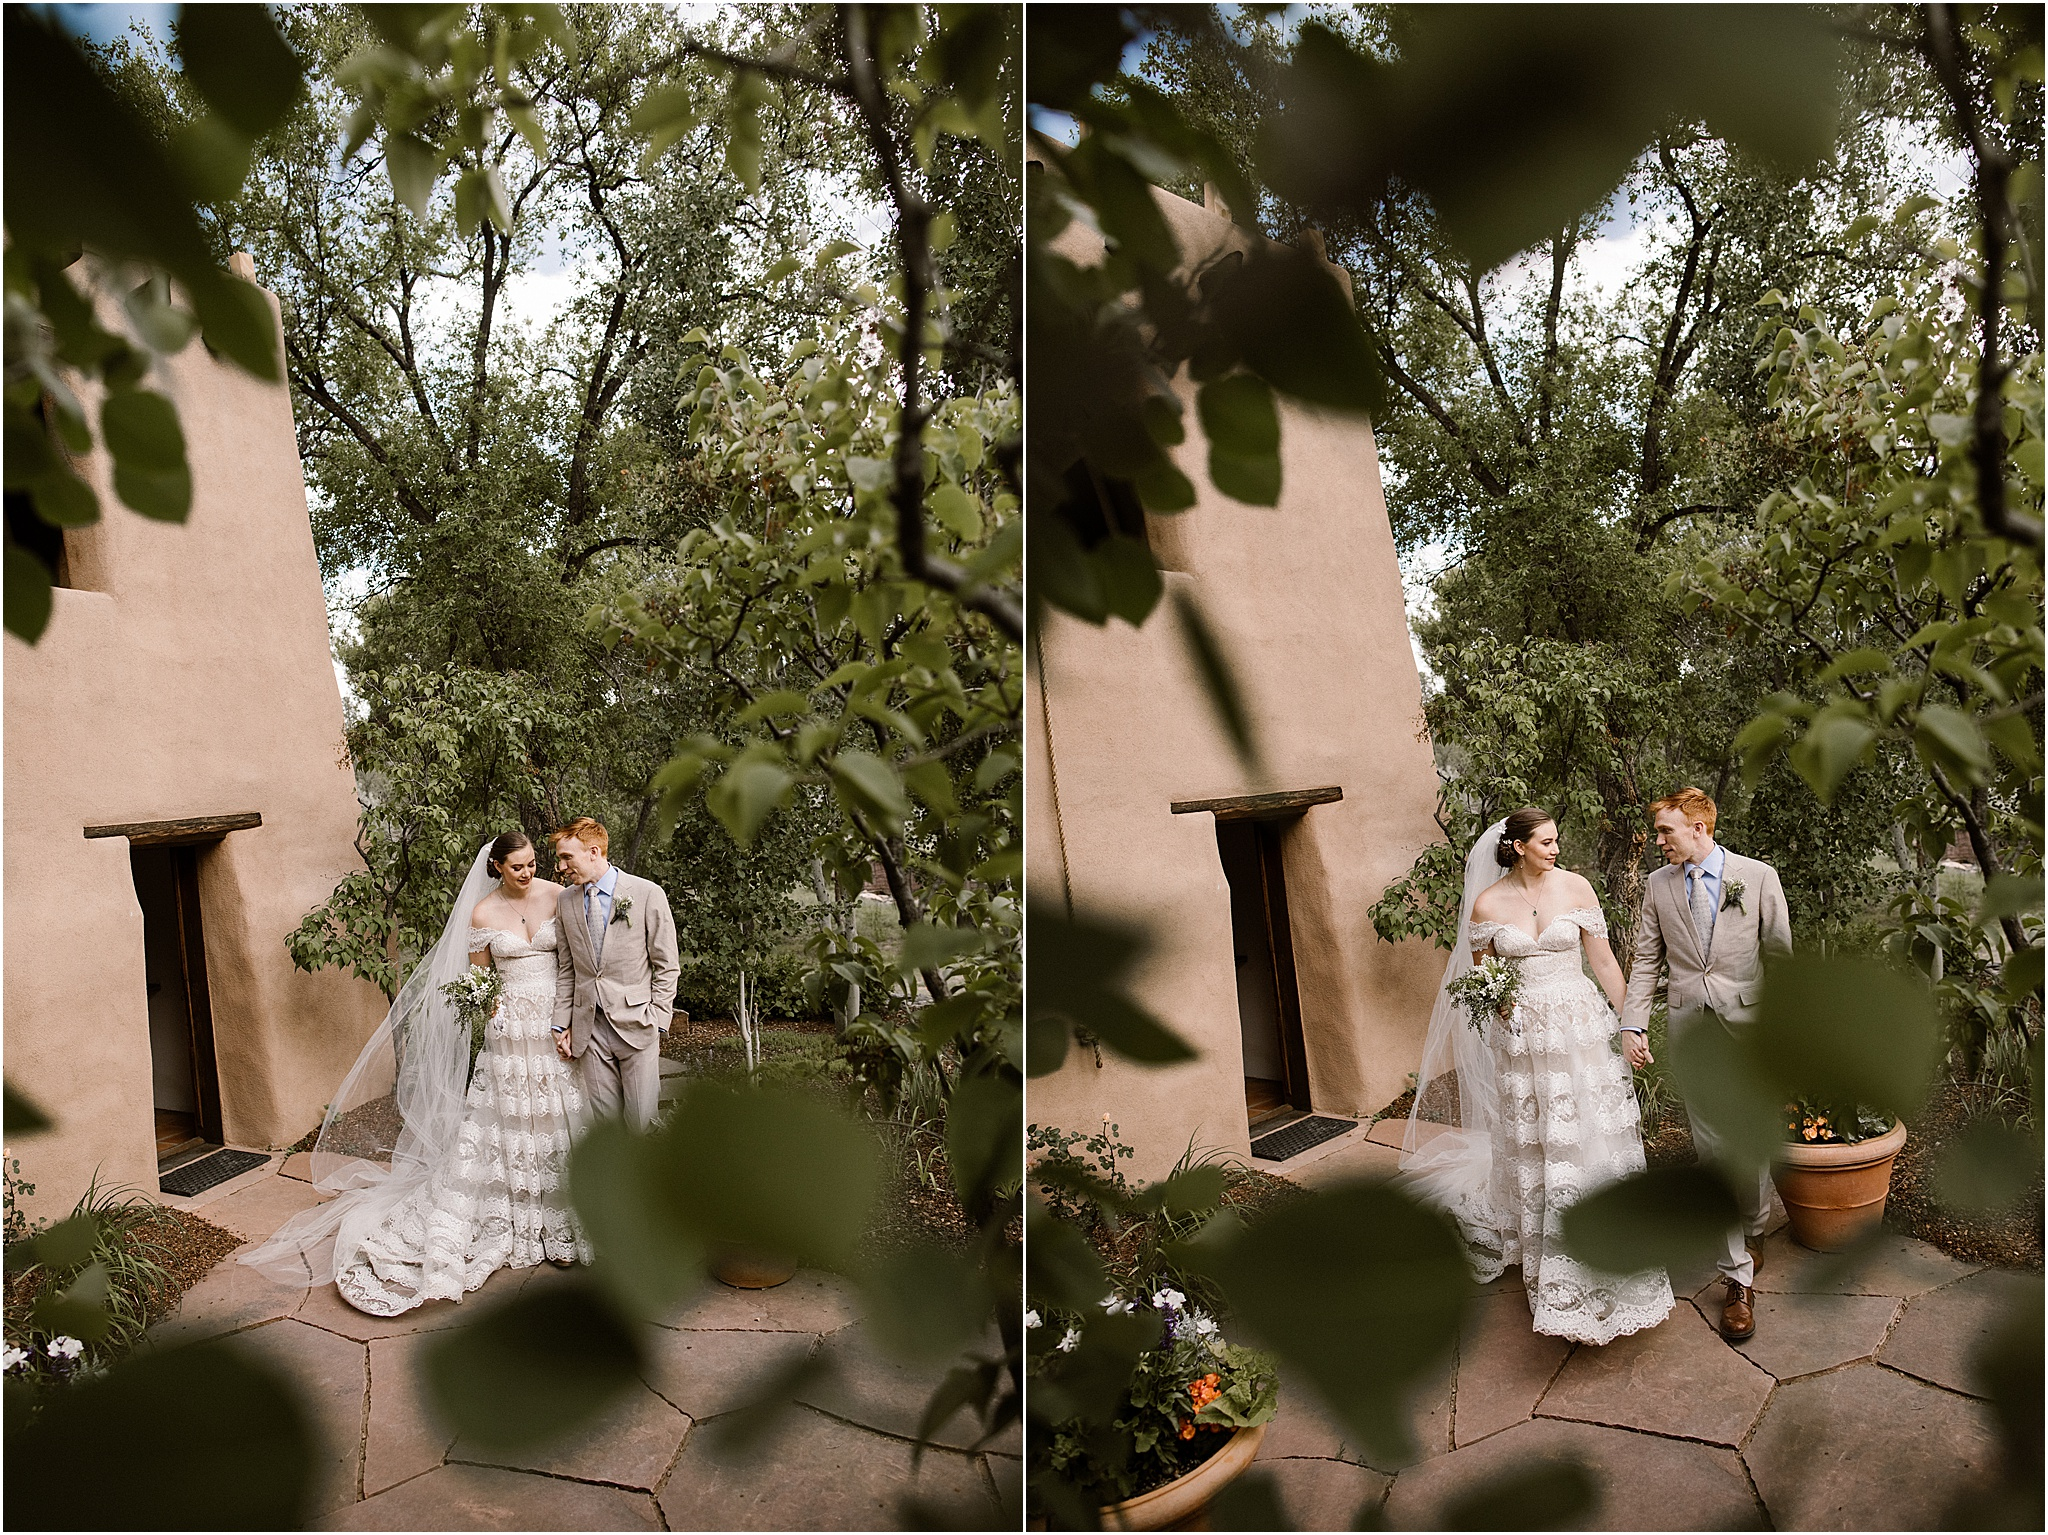 AMELIA_JASON_SANTA FE_ WEDDING_BLUE ROSE PHOTOGRAPHY83